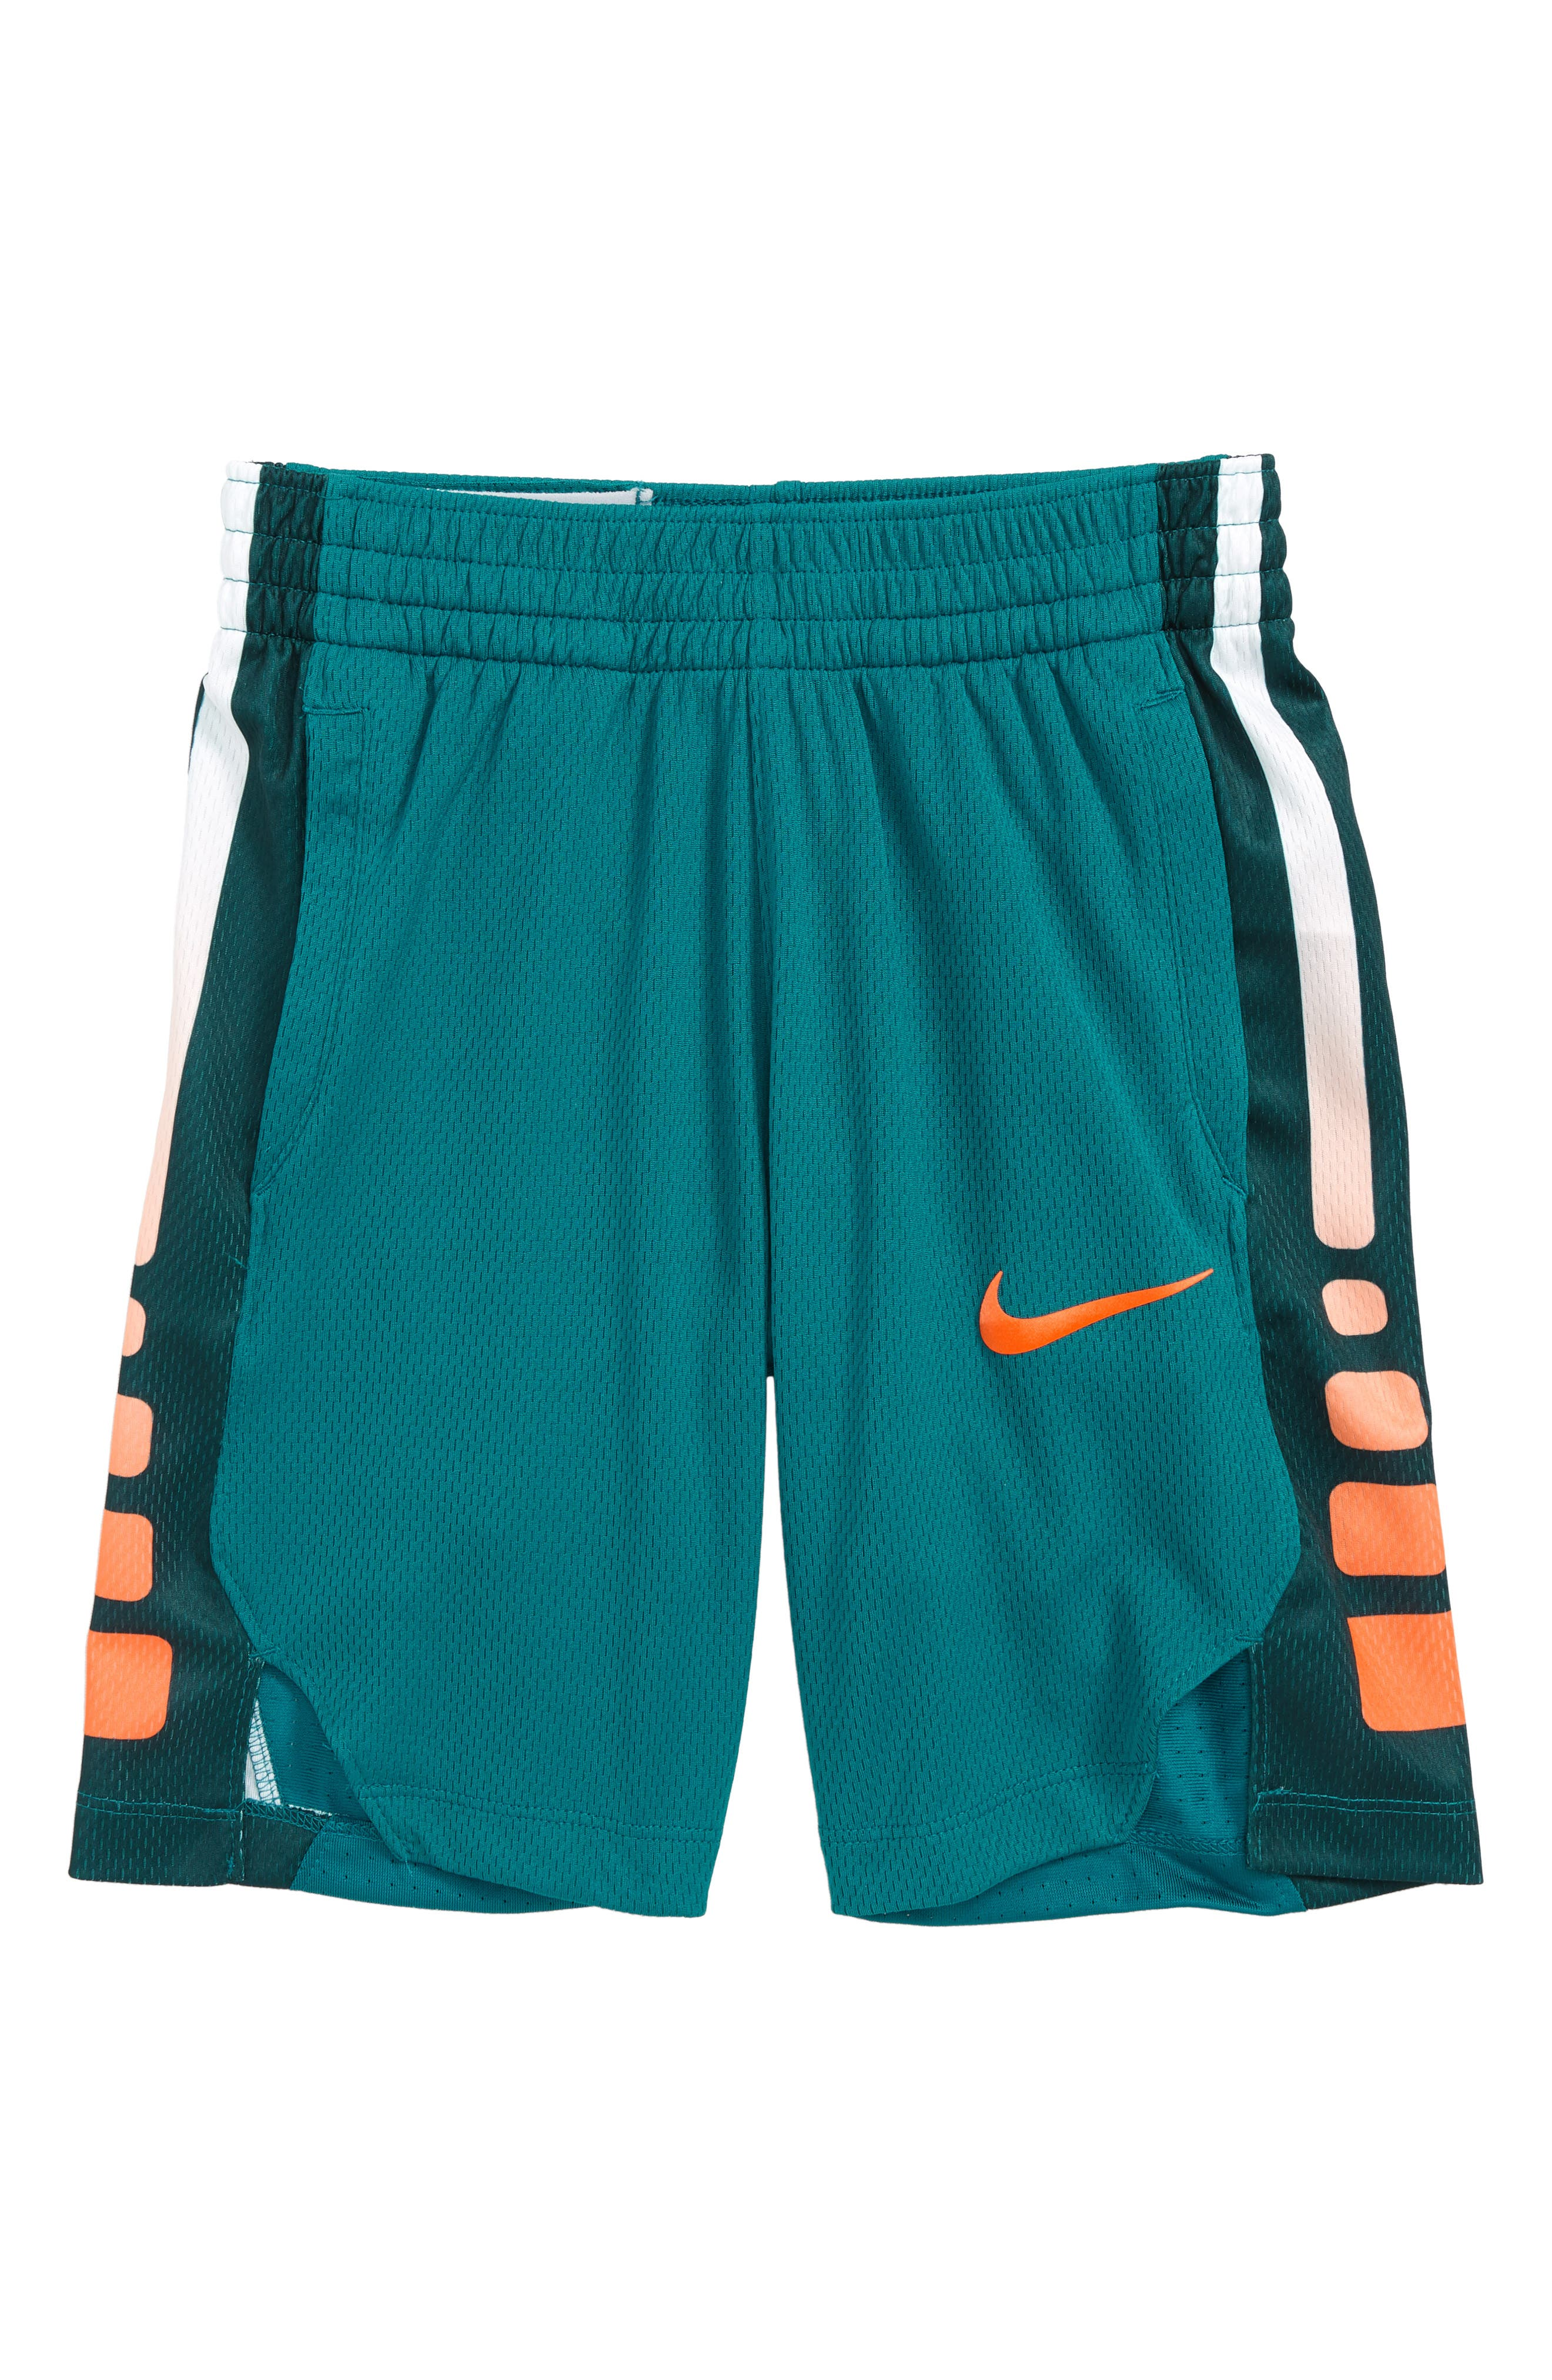 Dry Elite Basketball Shorts,                         Main,                         color, GEODE TEAL/ CONE